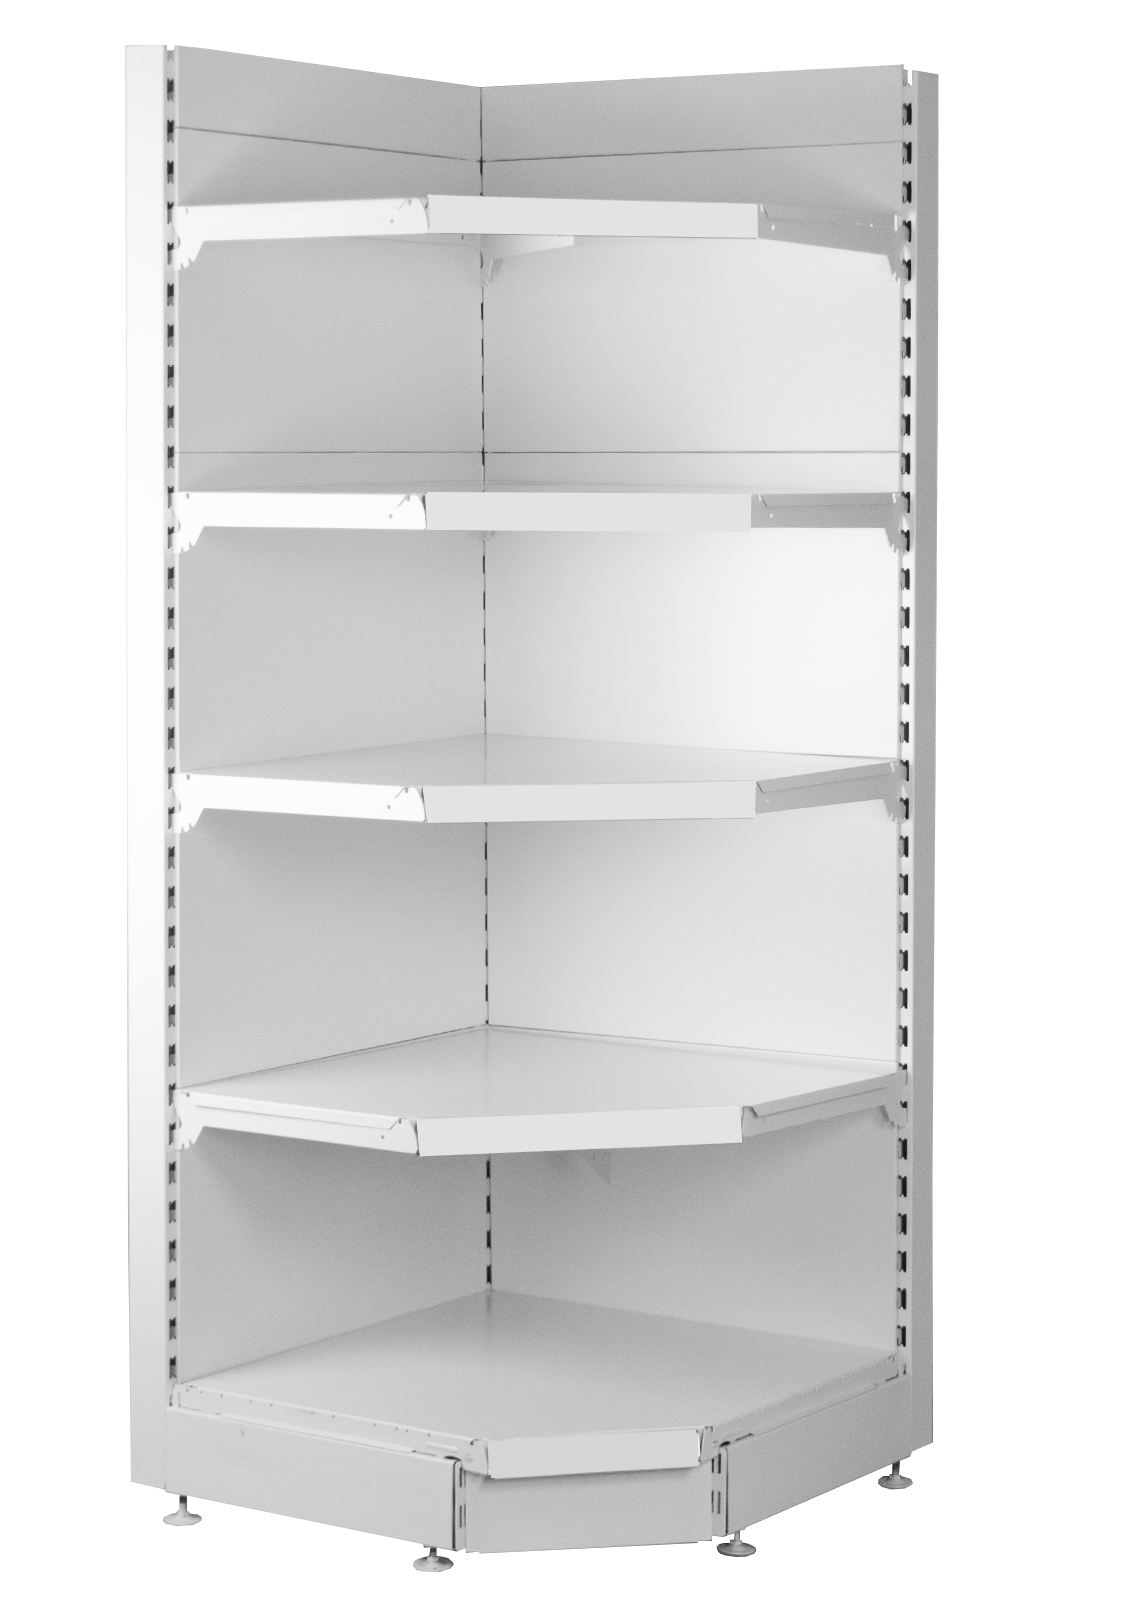 new styles 94a98 b461f Corner Shop Shelving Units - South West Shopfittings